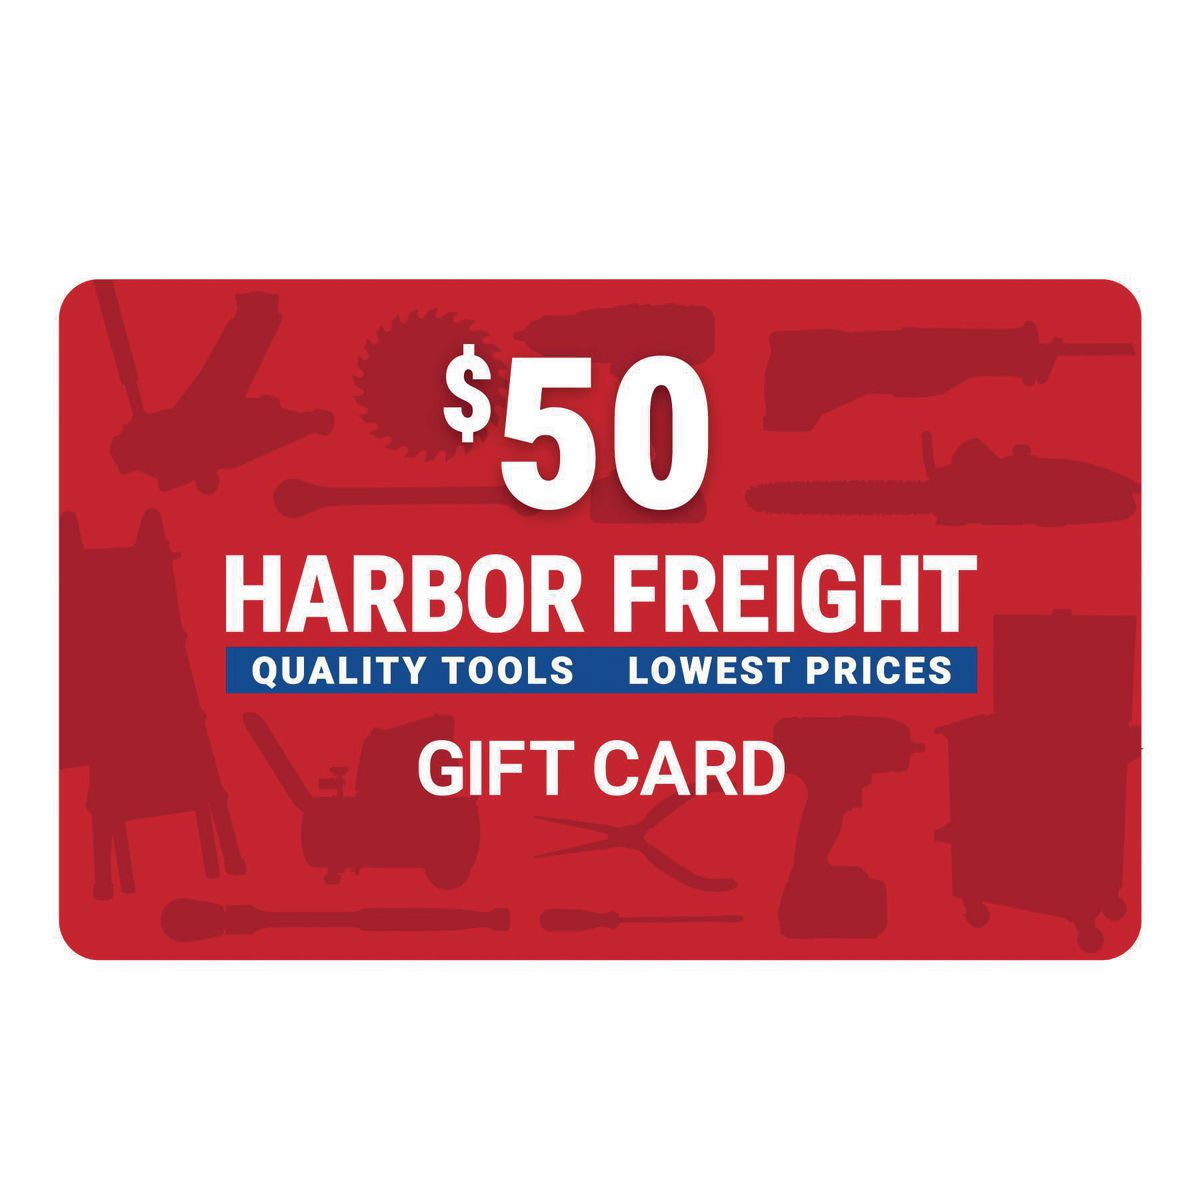 Harbor Freight Tools Trademarks that appear on this site are owned by Harbor Freight Tools and not by CardCash. Harbor Freight Tools is not a participating partner or sponsor in this offer and CardCash does not issue gift cards on behalf of Harbor Freight Tools.